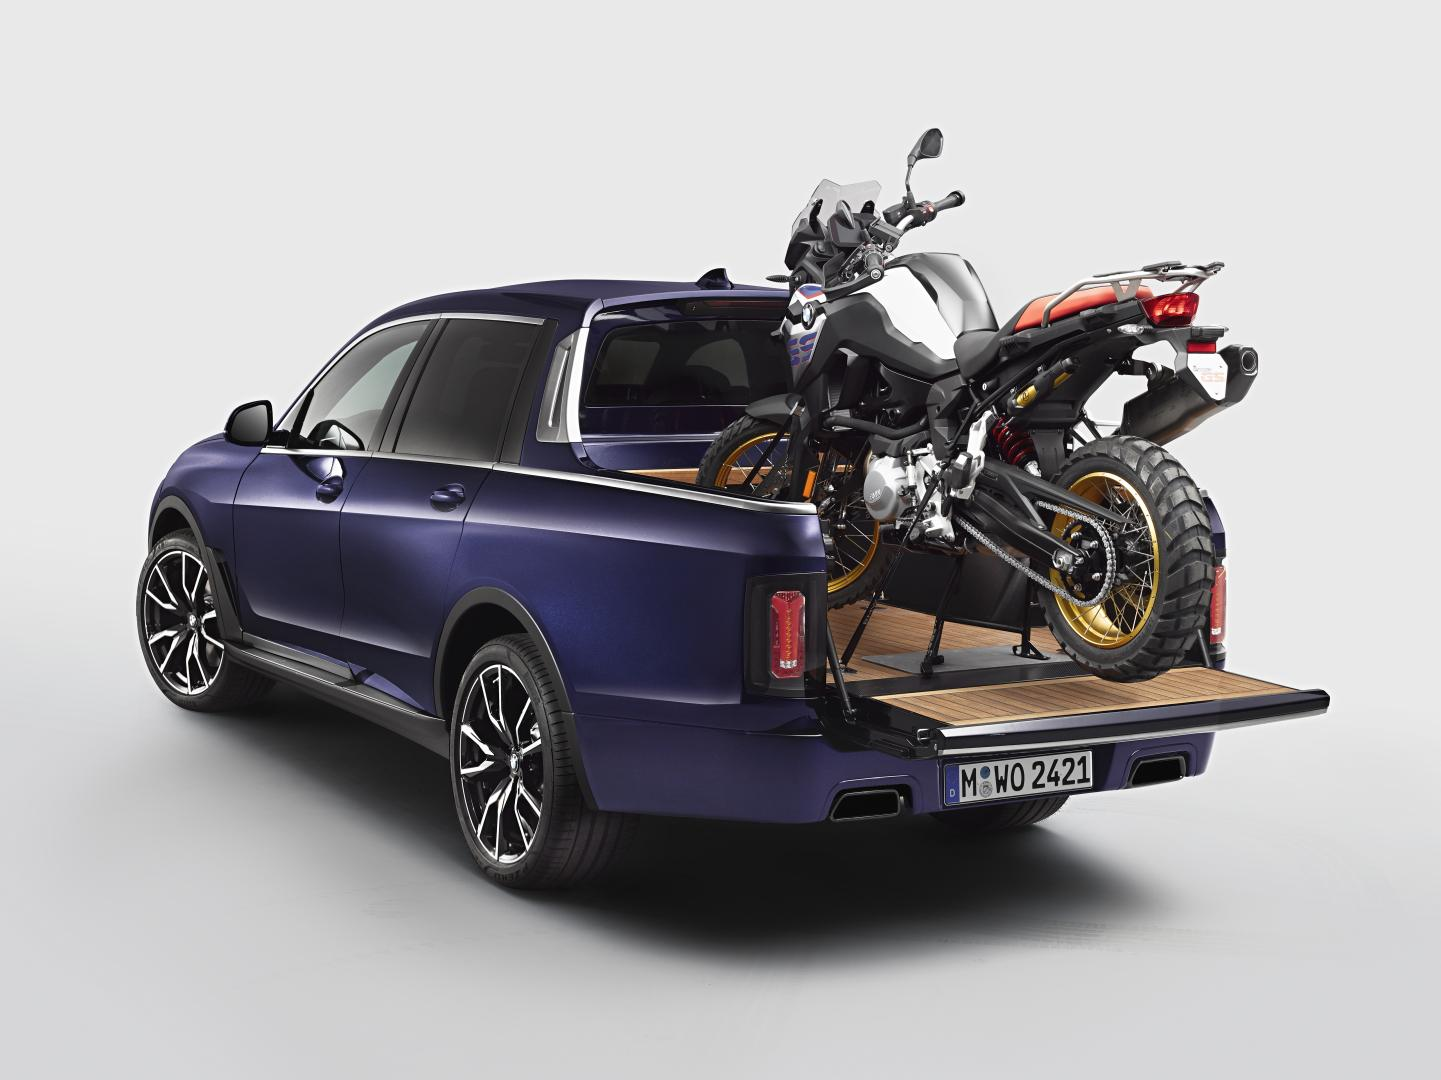 BMW F 850 GS en BMW X7 Pick-up